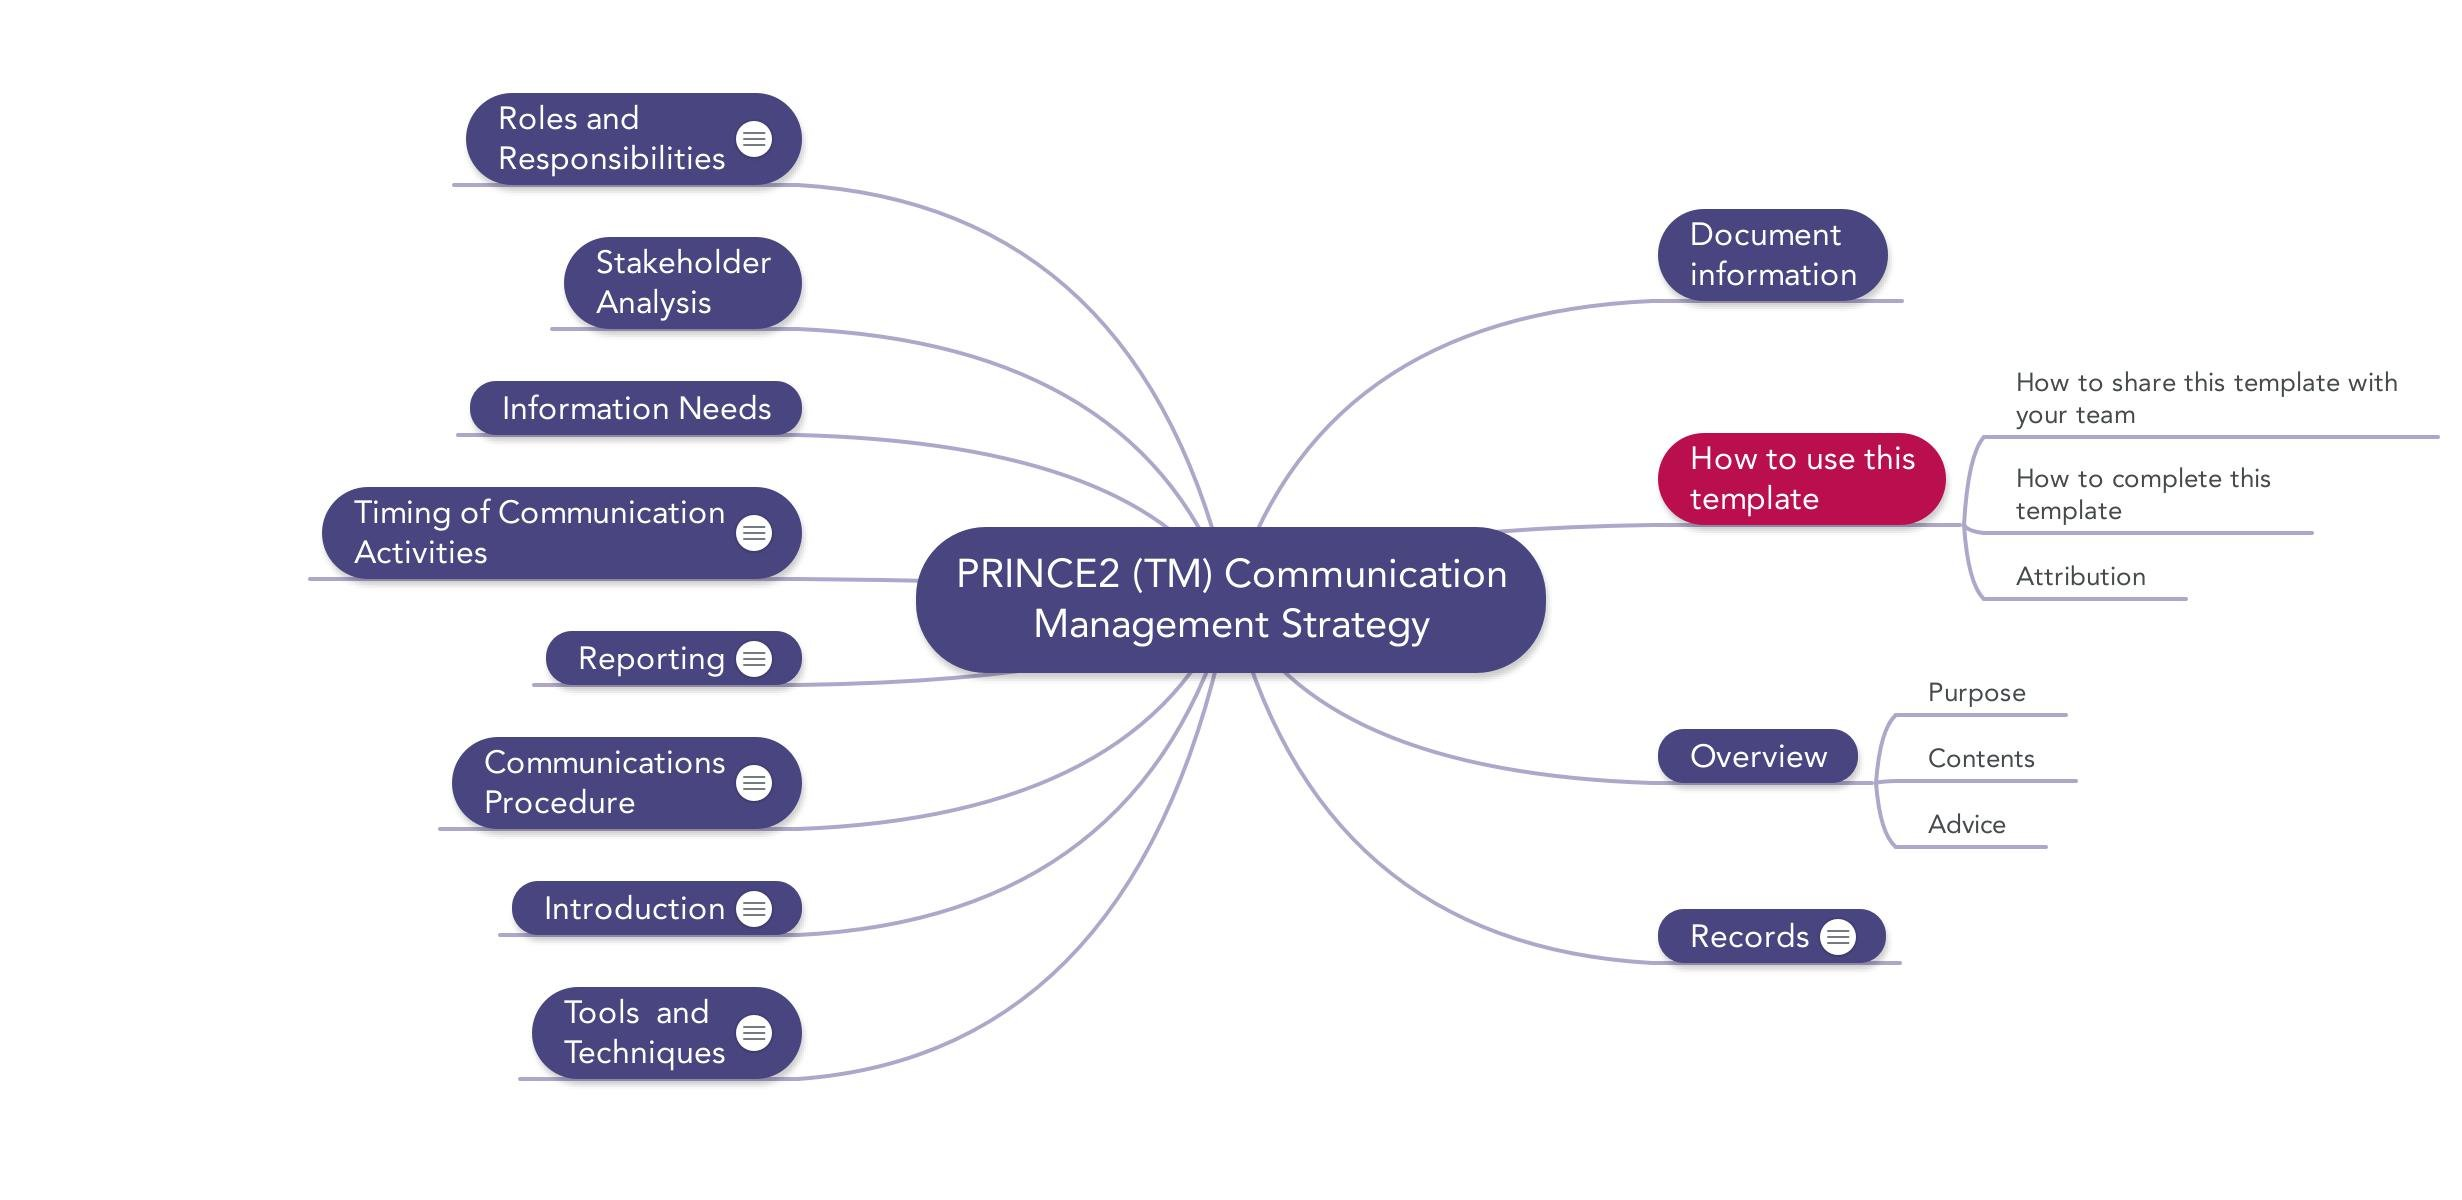 Image Of Prince2 Mindmap Communication Management Strategy Template